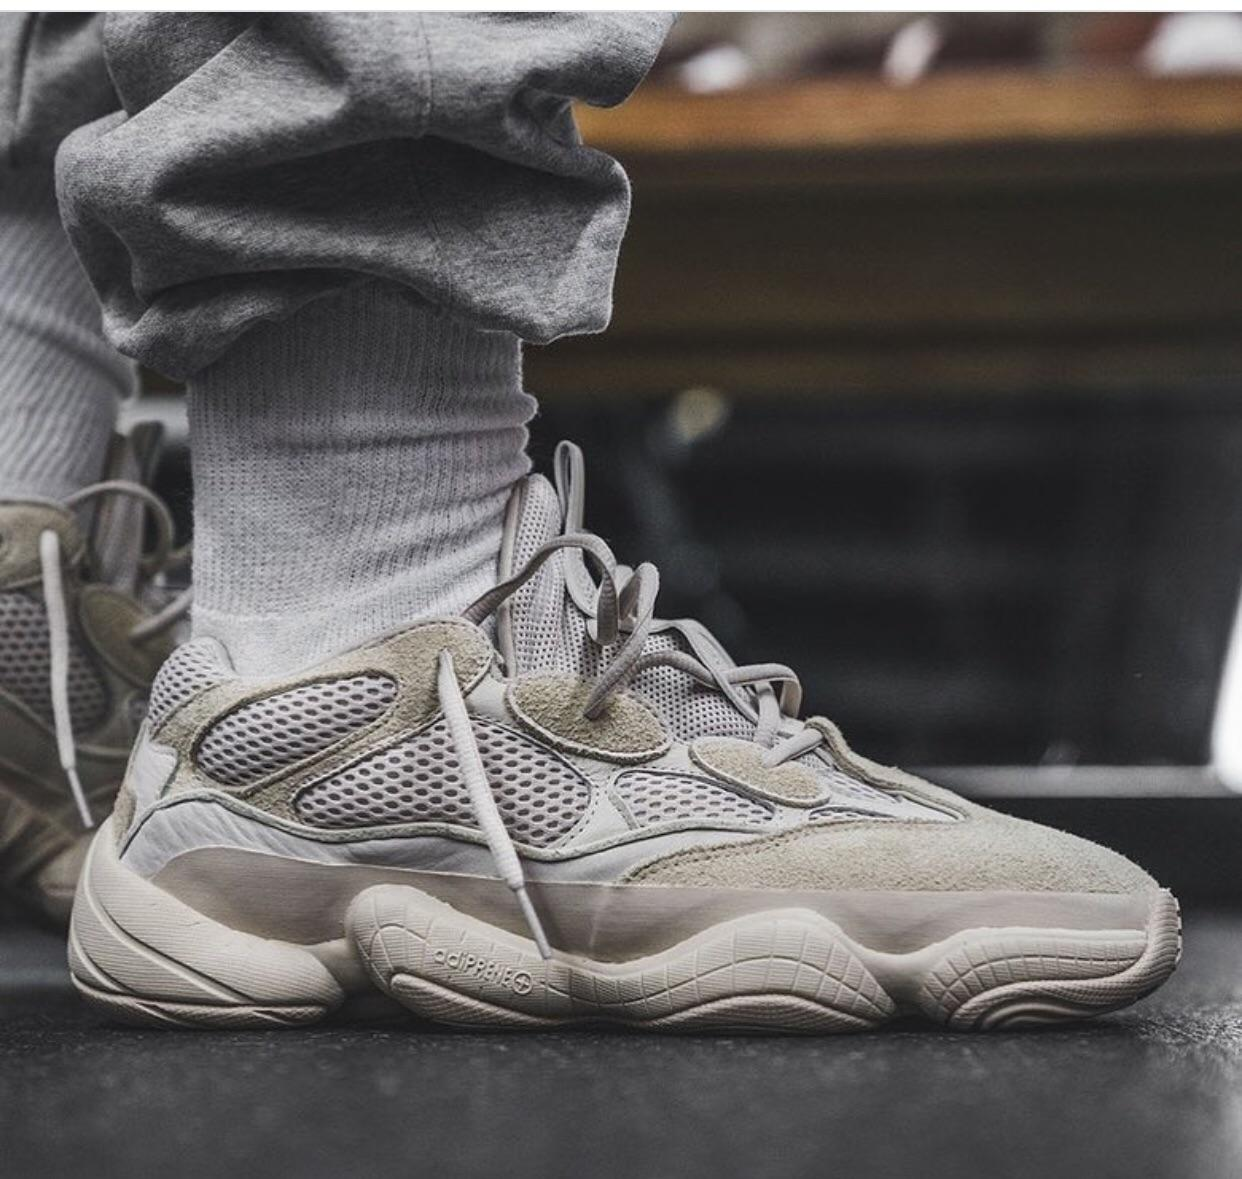 uk availability 5551a 23d49 Yeezy 500 Desert rat Blush